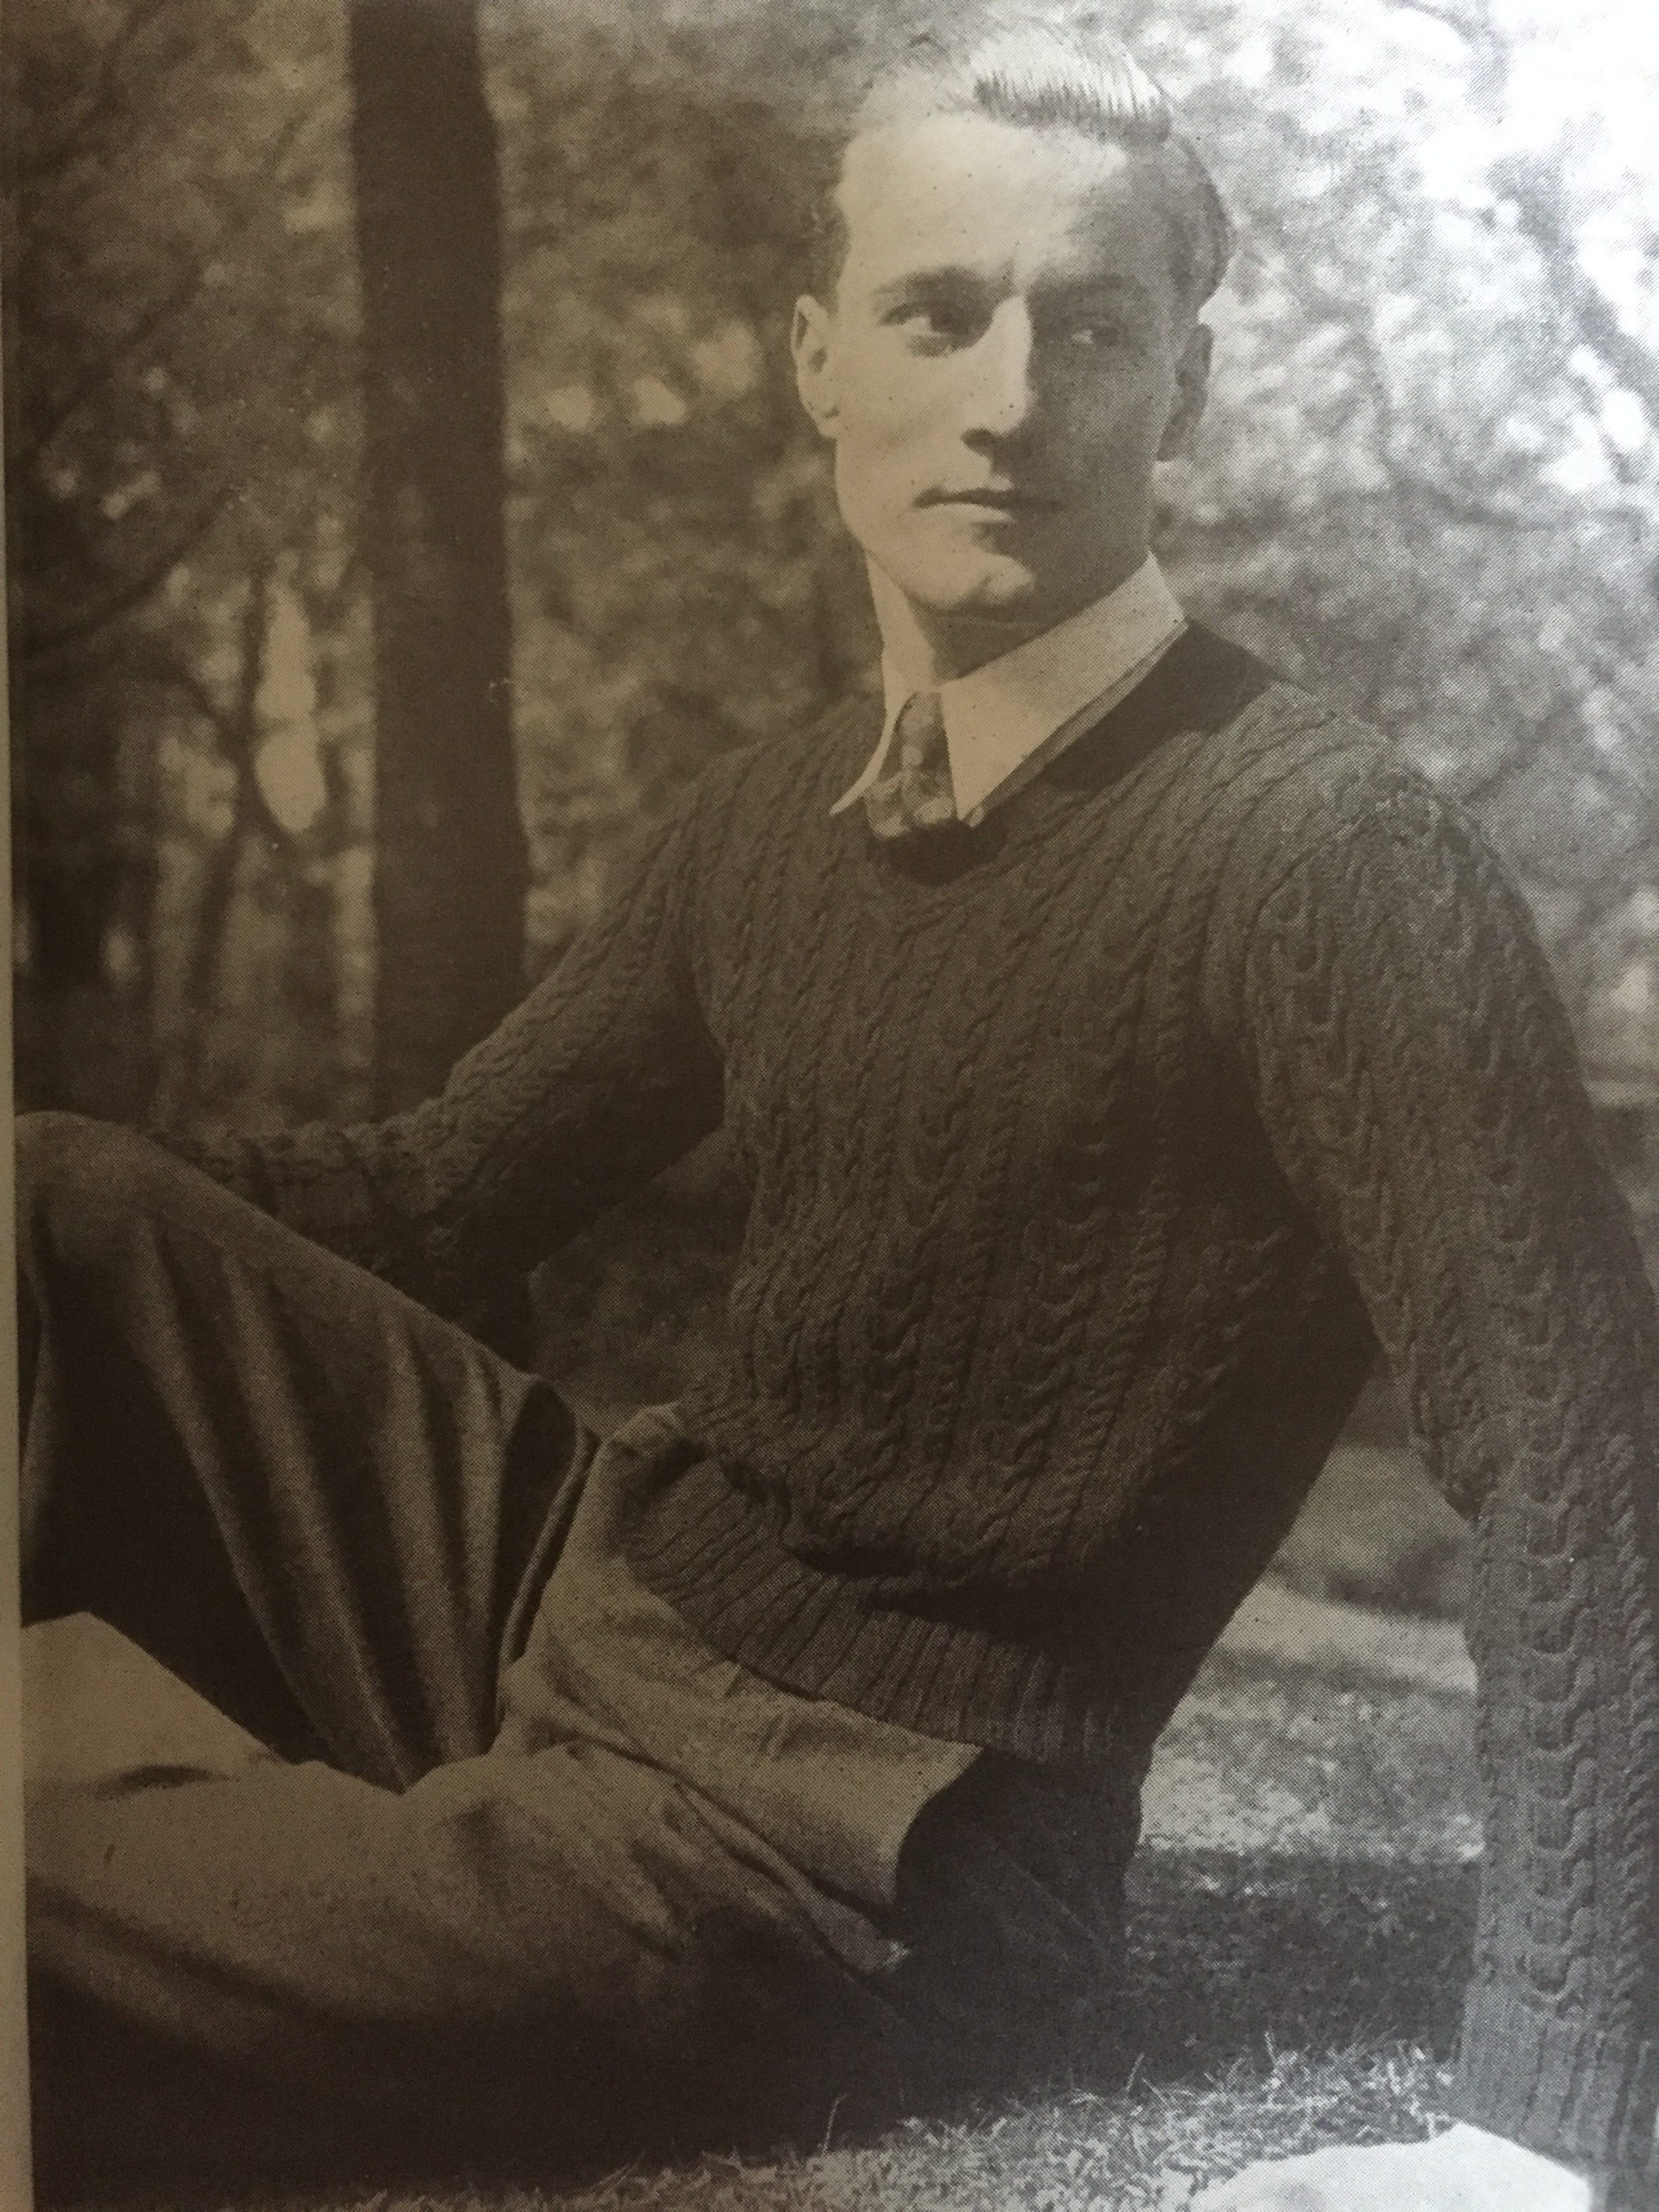 vintage photo of male knitwear model leaning on the ground in a park